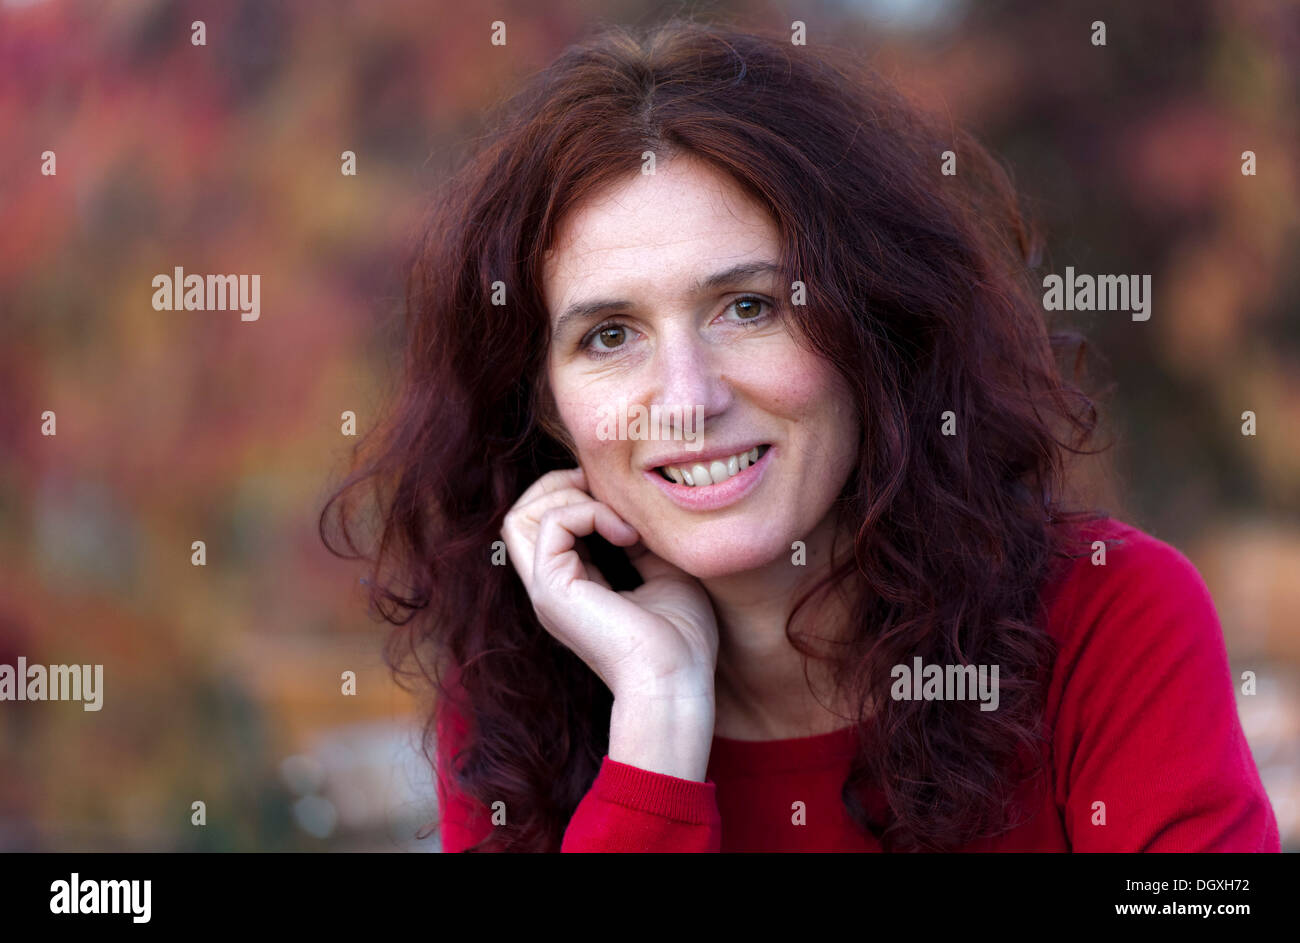 Red Haired Actress Stock Photos & Red Haired Actress Stock ...